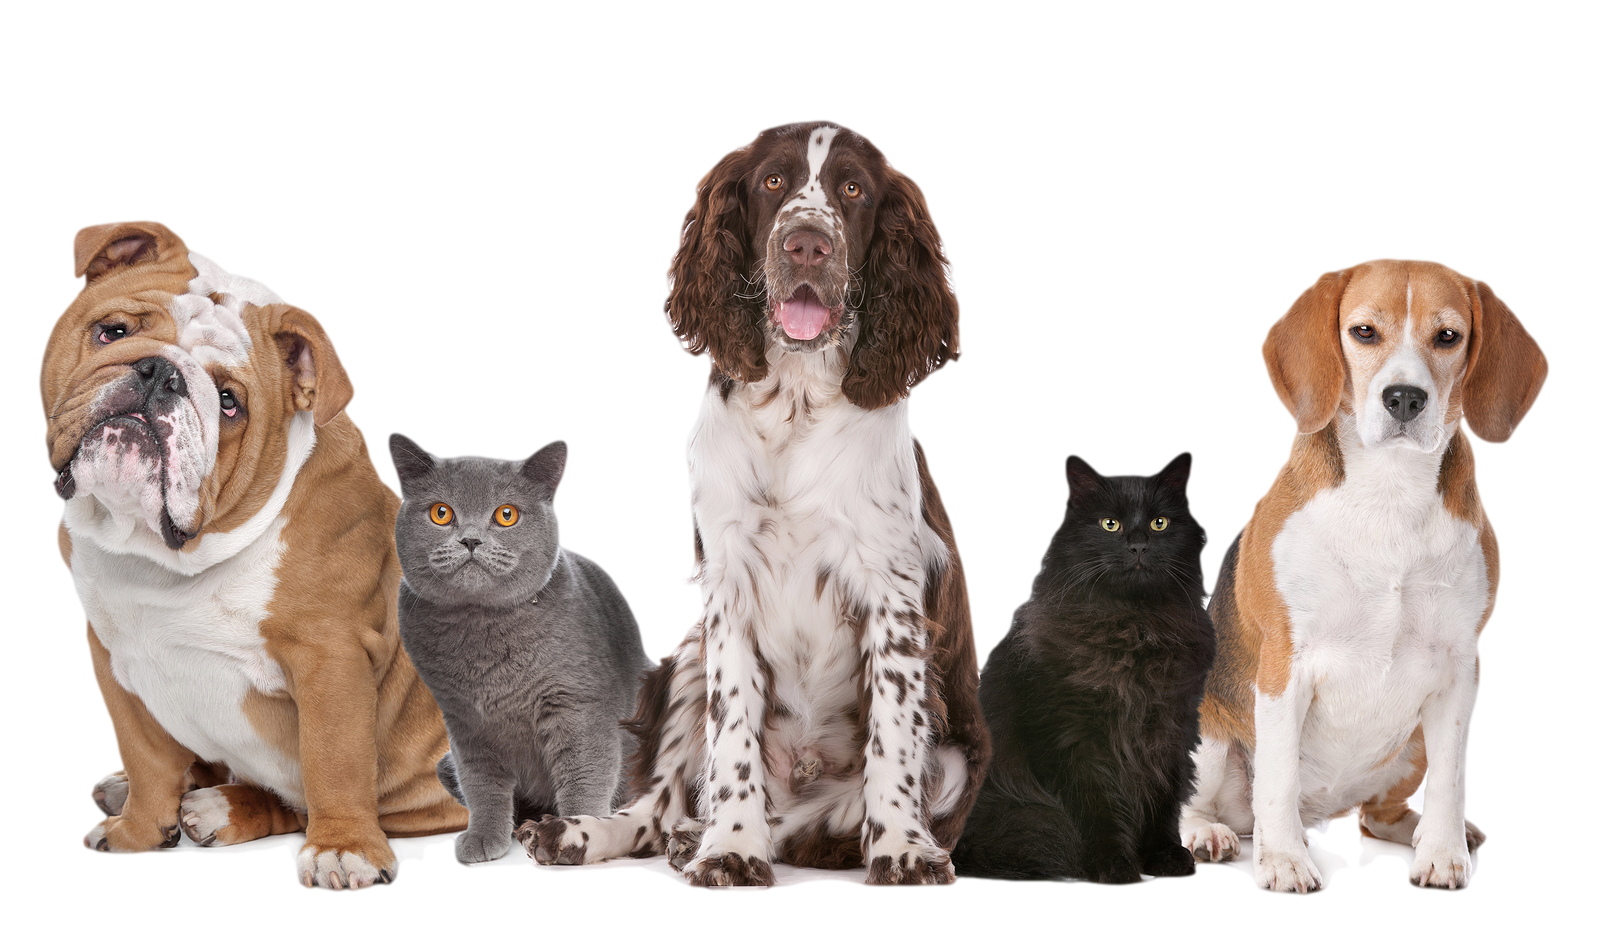 png-hd-dogs-and-cats-dog-png-transparent-image-16001.png